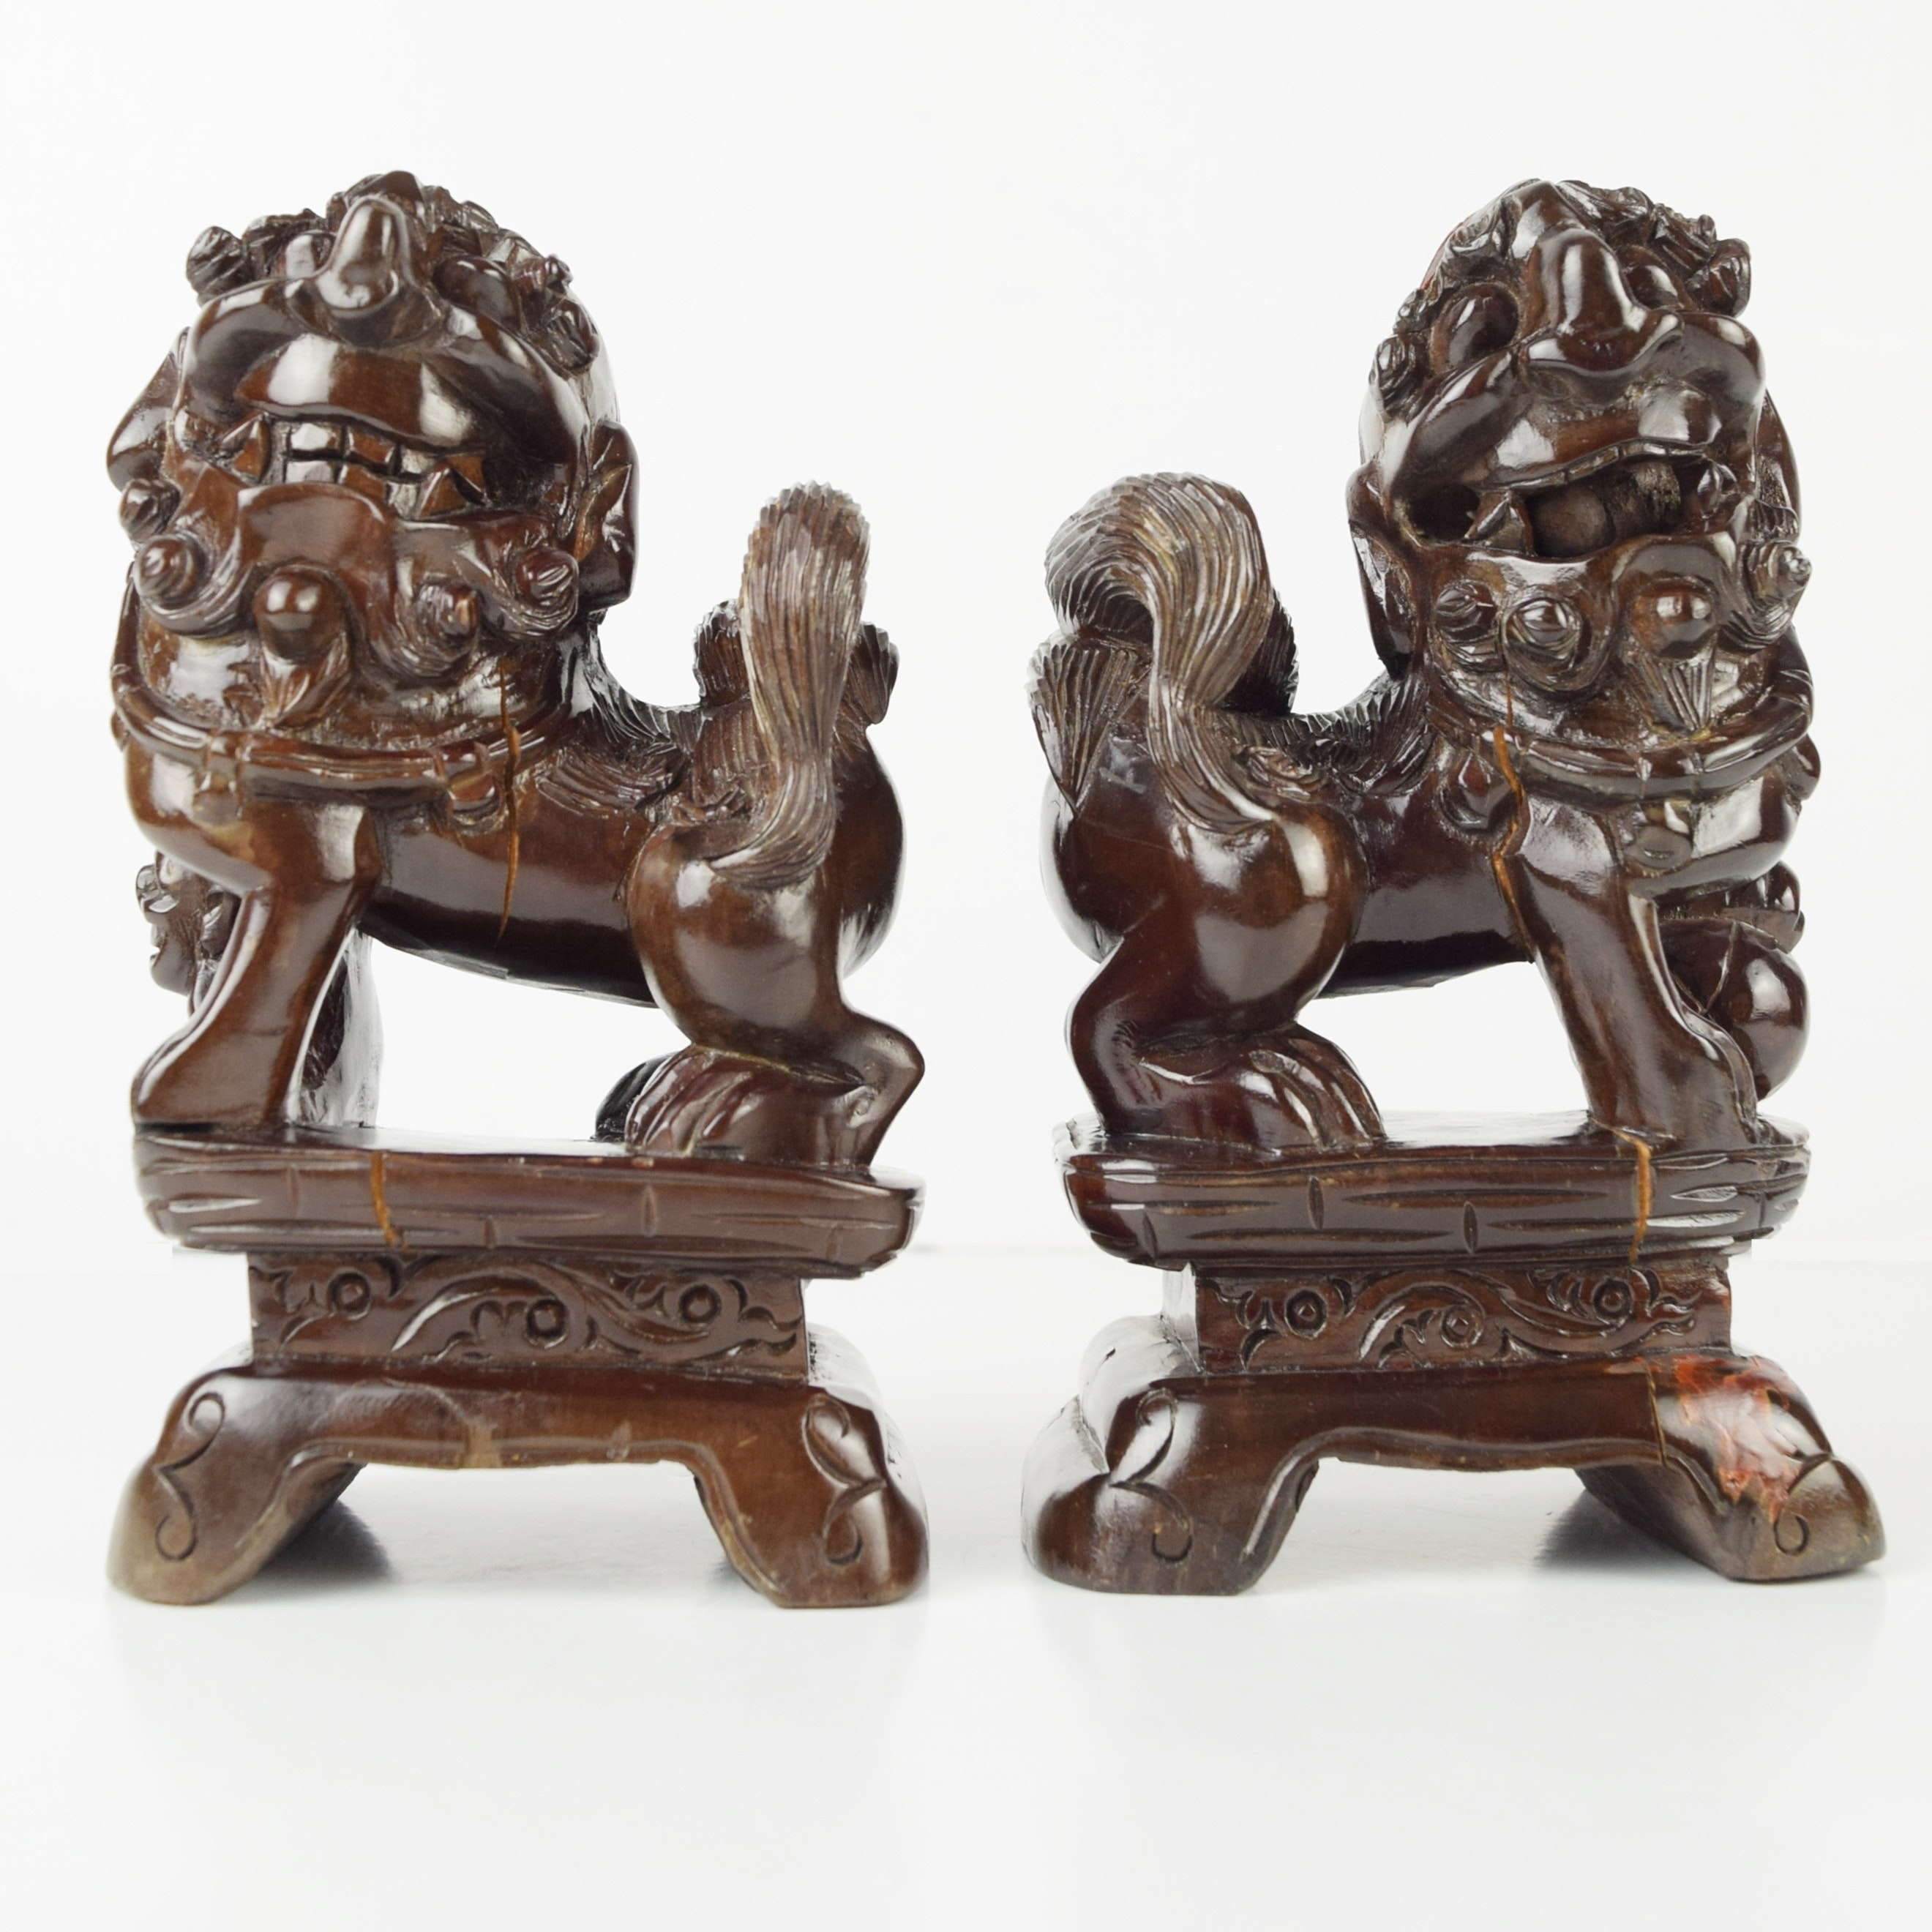 Pair of Lacquered Wood Chinese Guardian Lions